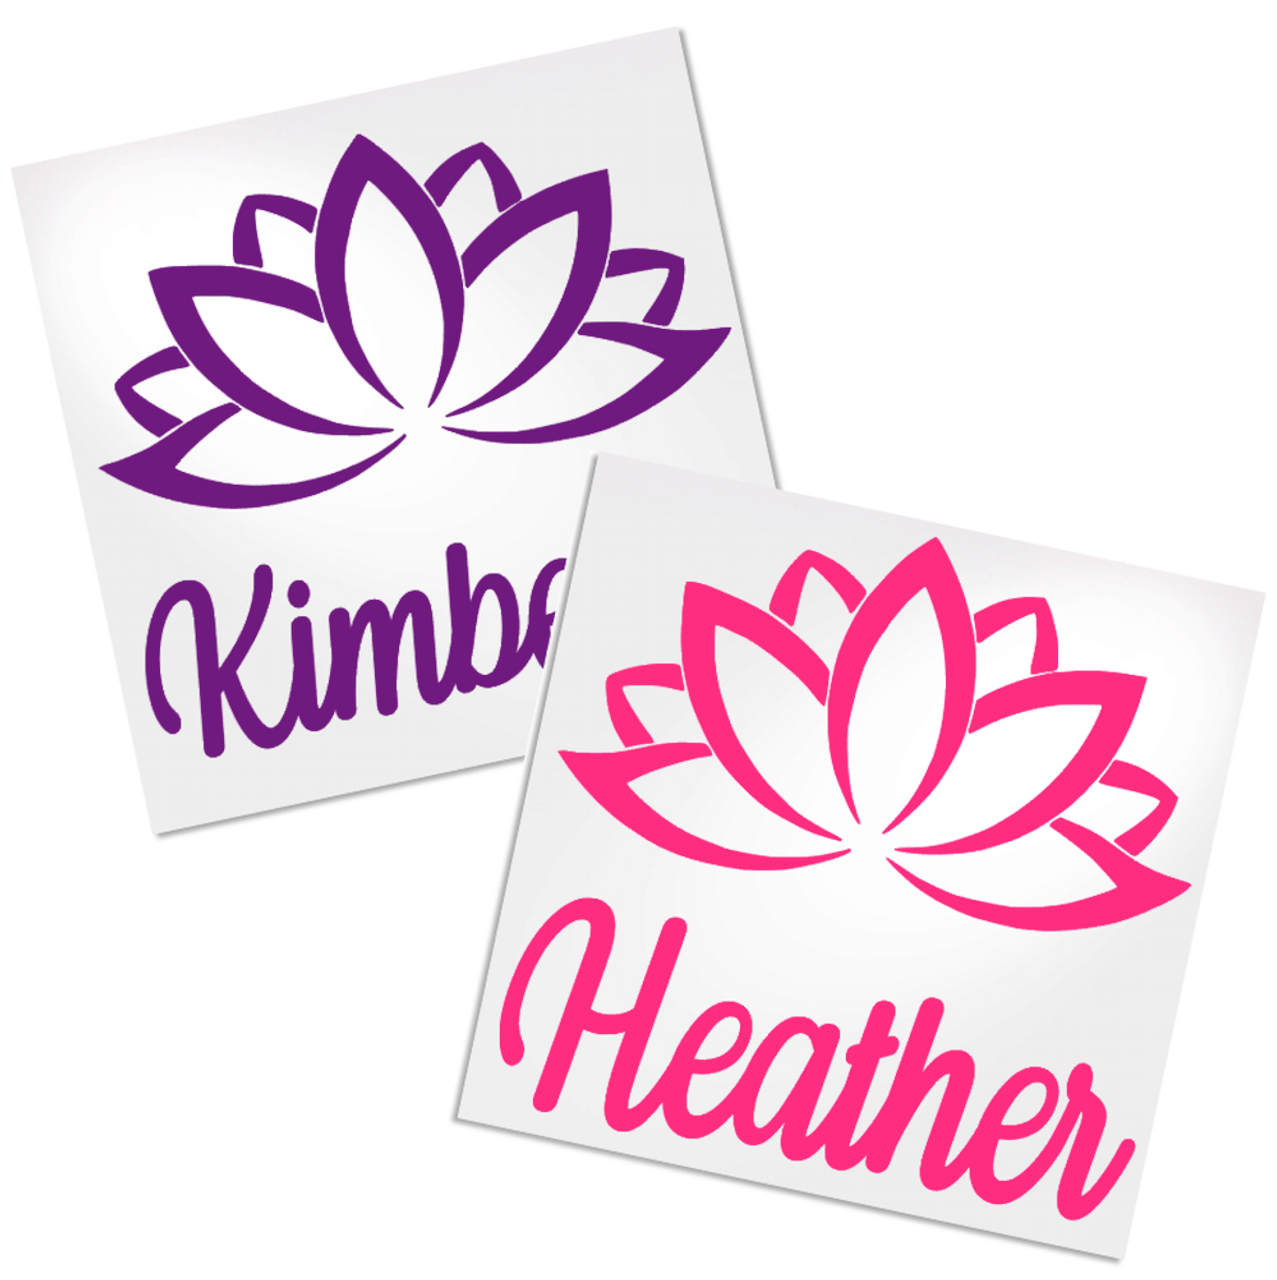 8991a2254da1d4 Lotus Flower Decal with name is a great way to personalize any hard